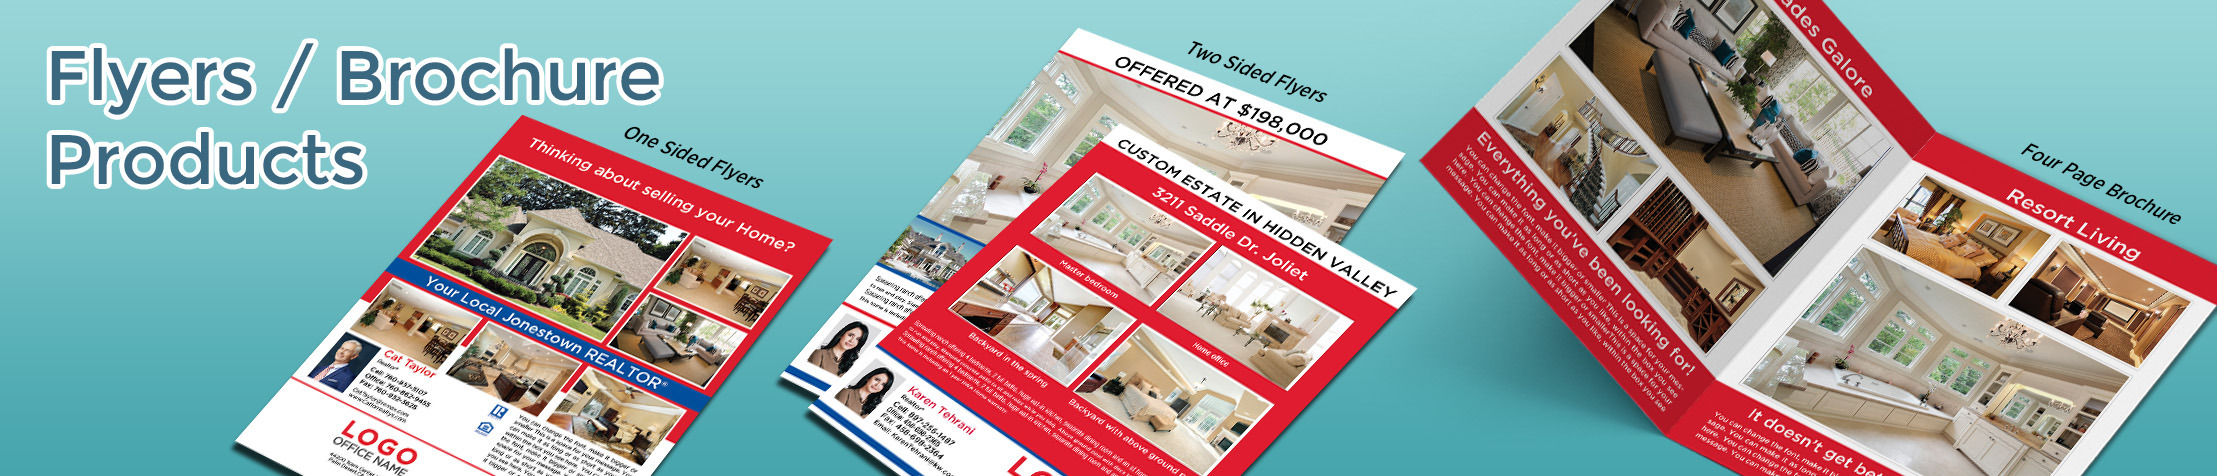 RE/MAX Real Estate Flyers and Brochures - RE/MAX flyer and brochure templates for open houses and marketing | BestPrintBuy.com